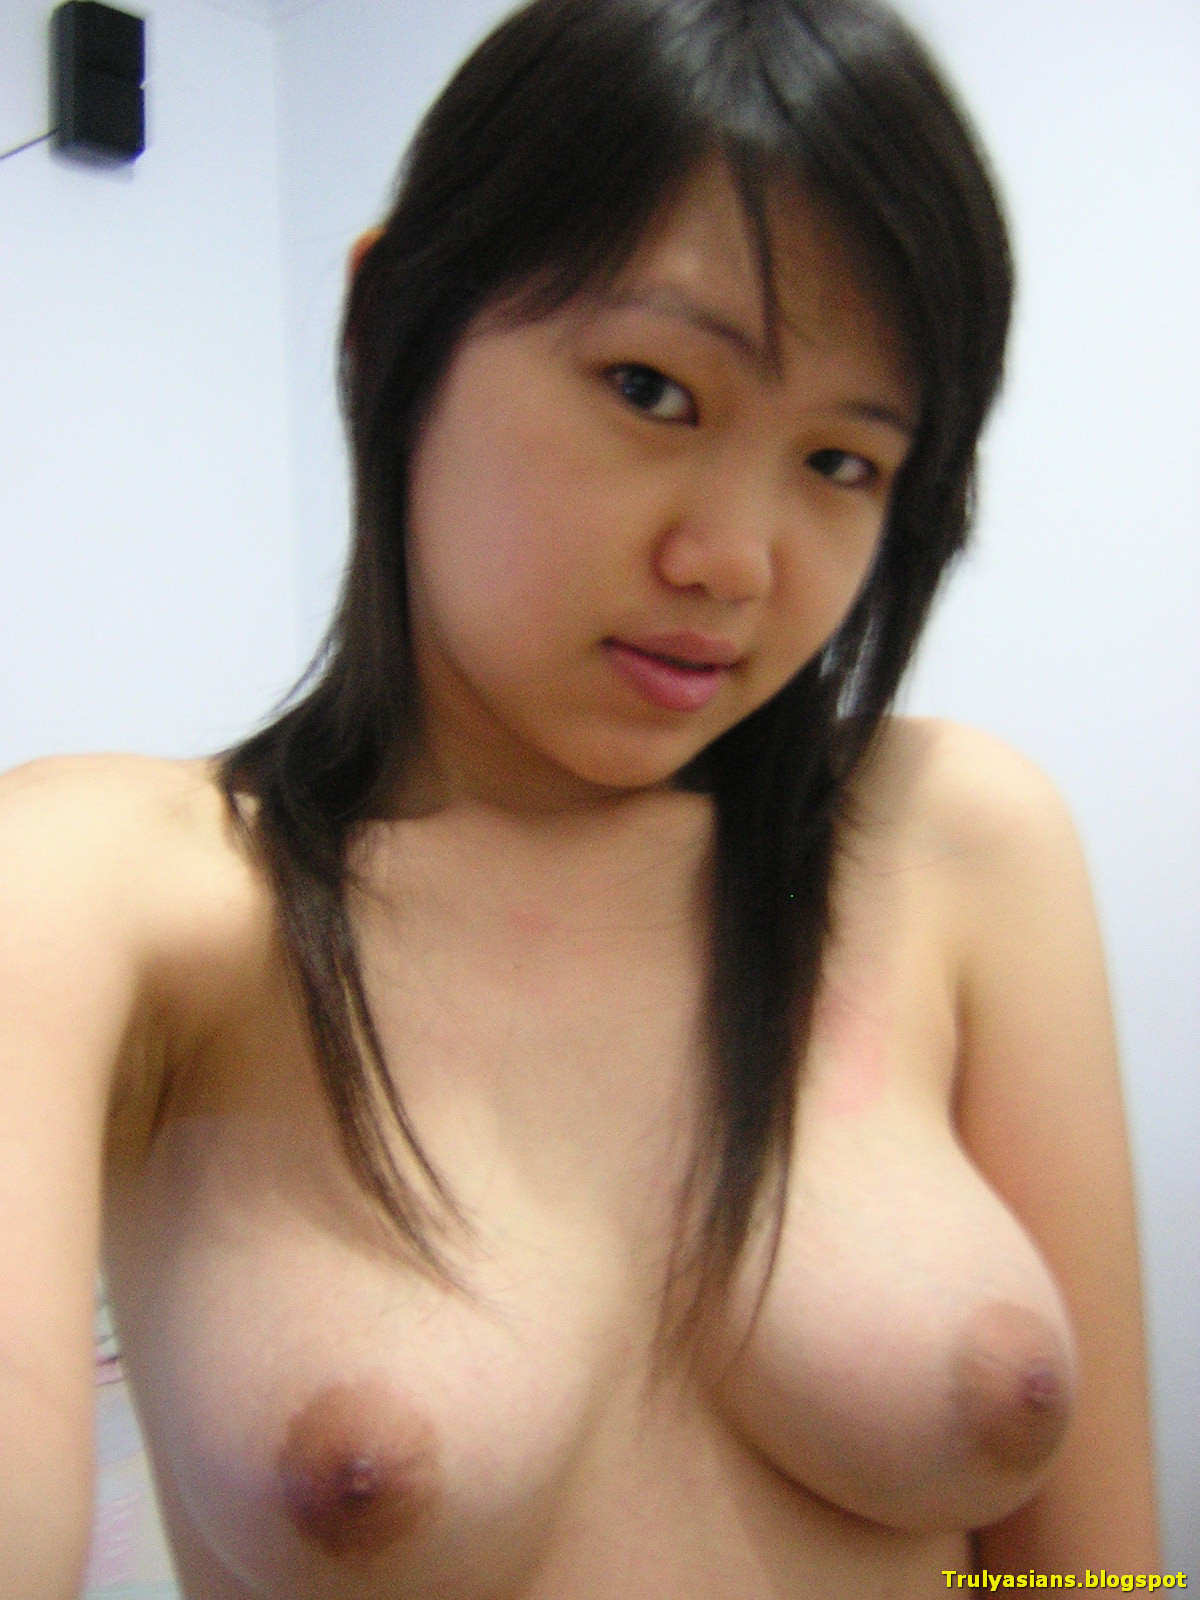 Teenage chinese girls topless 15